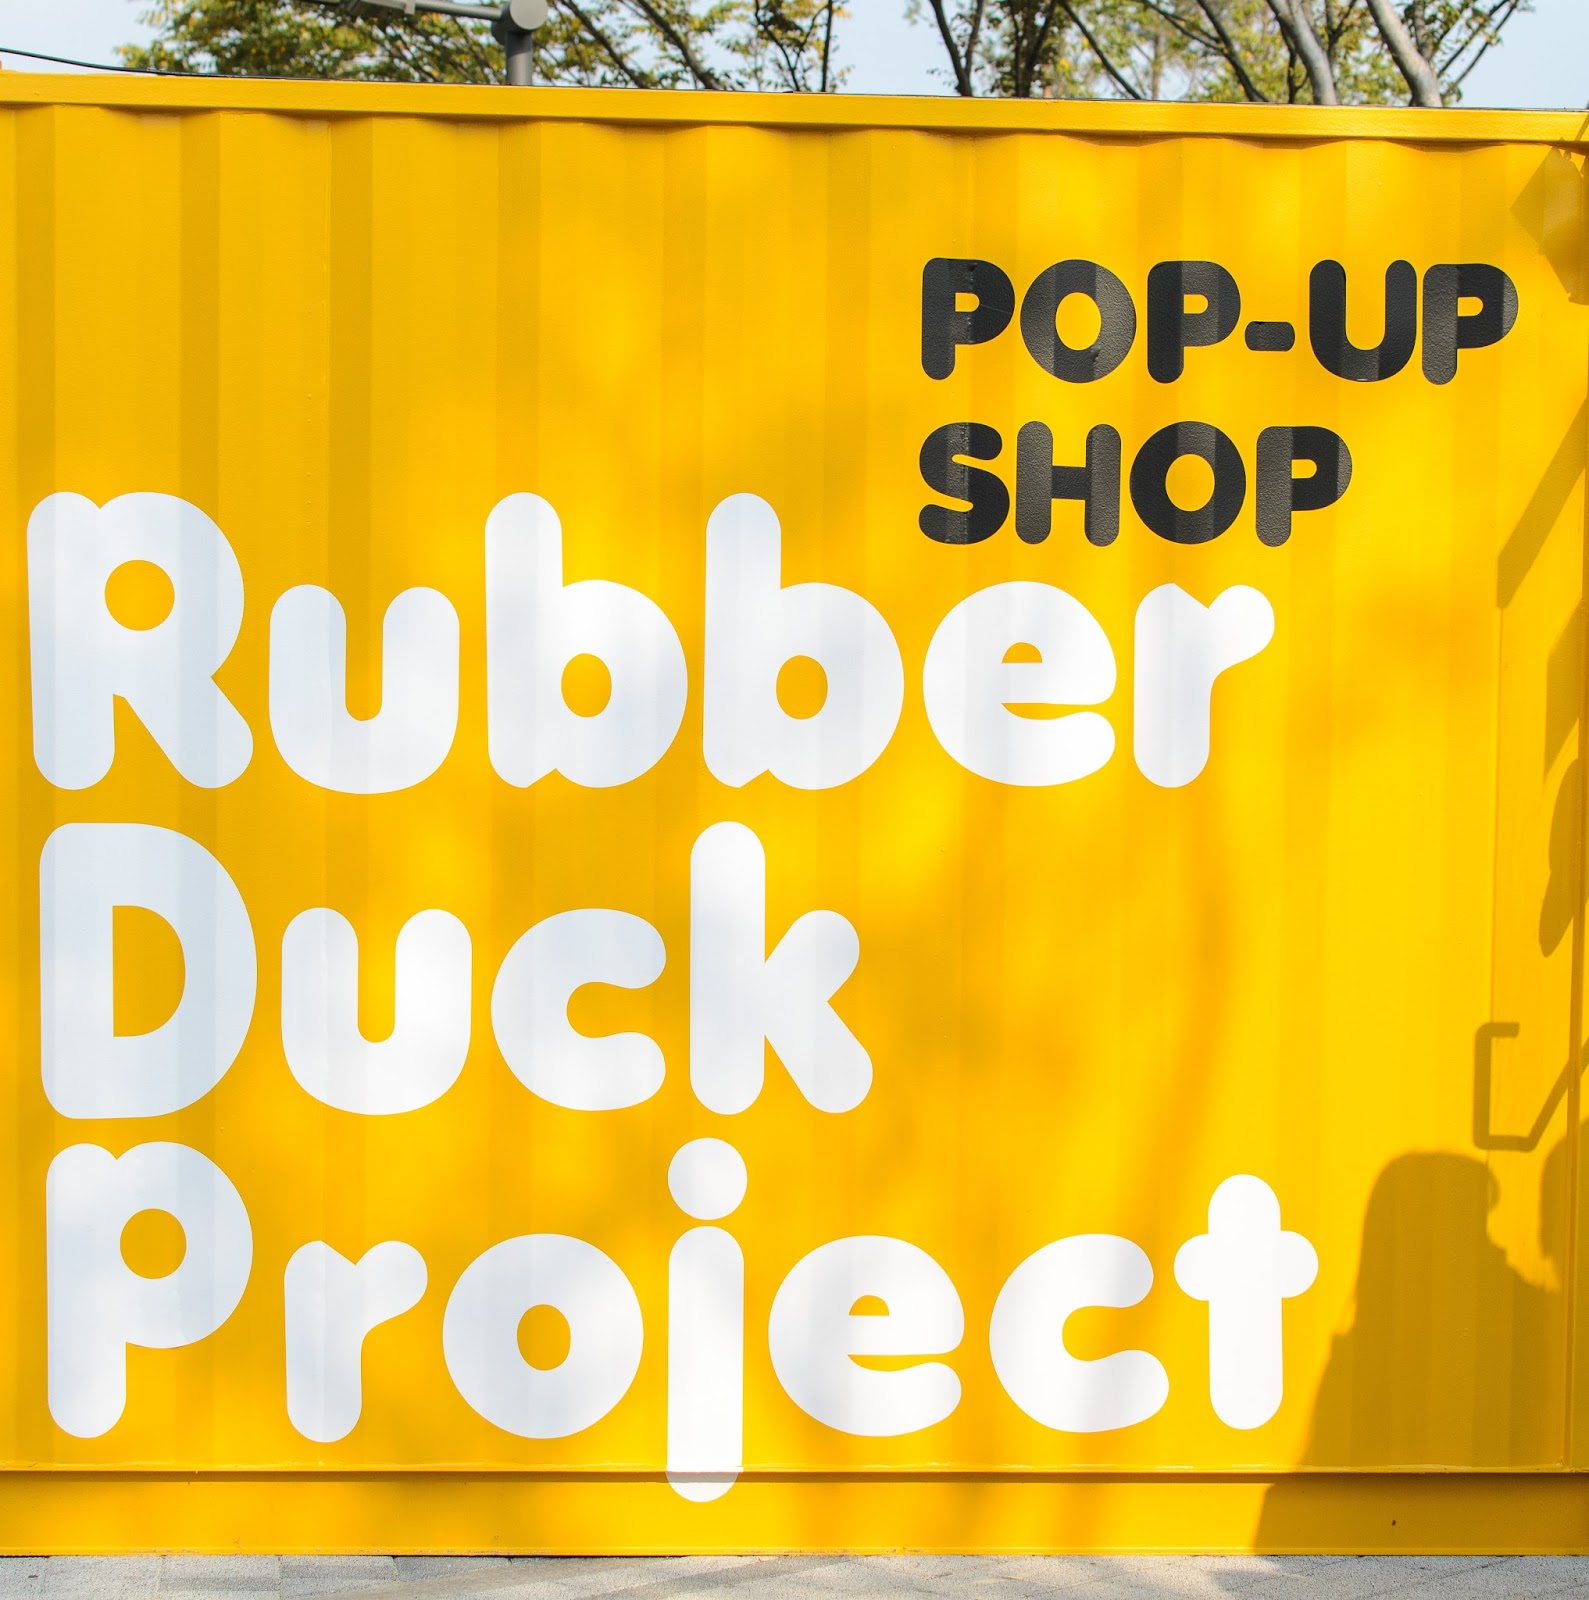 The rubber duck project